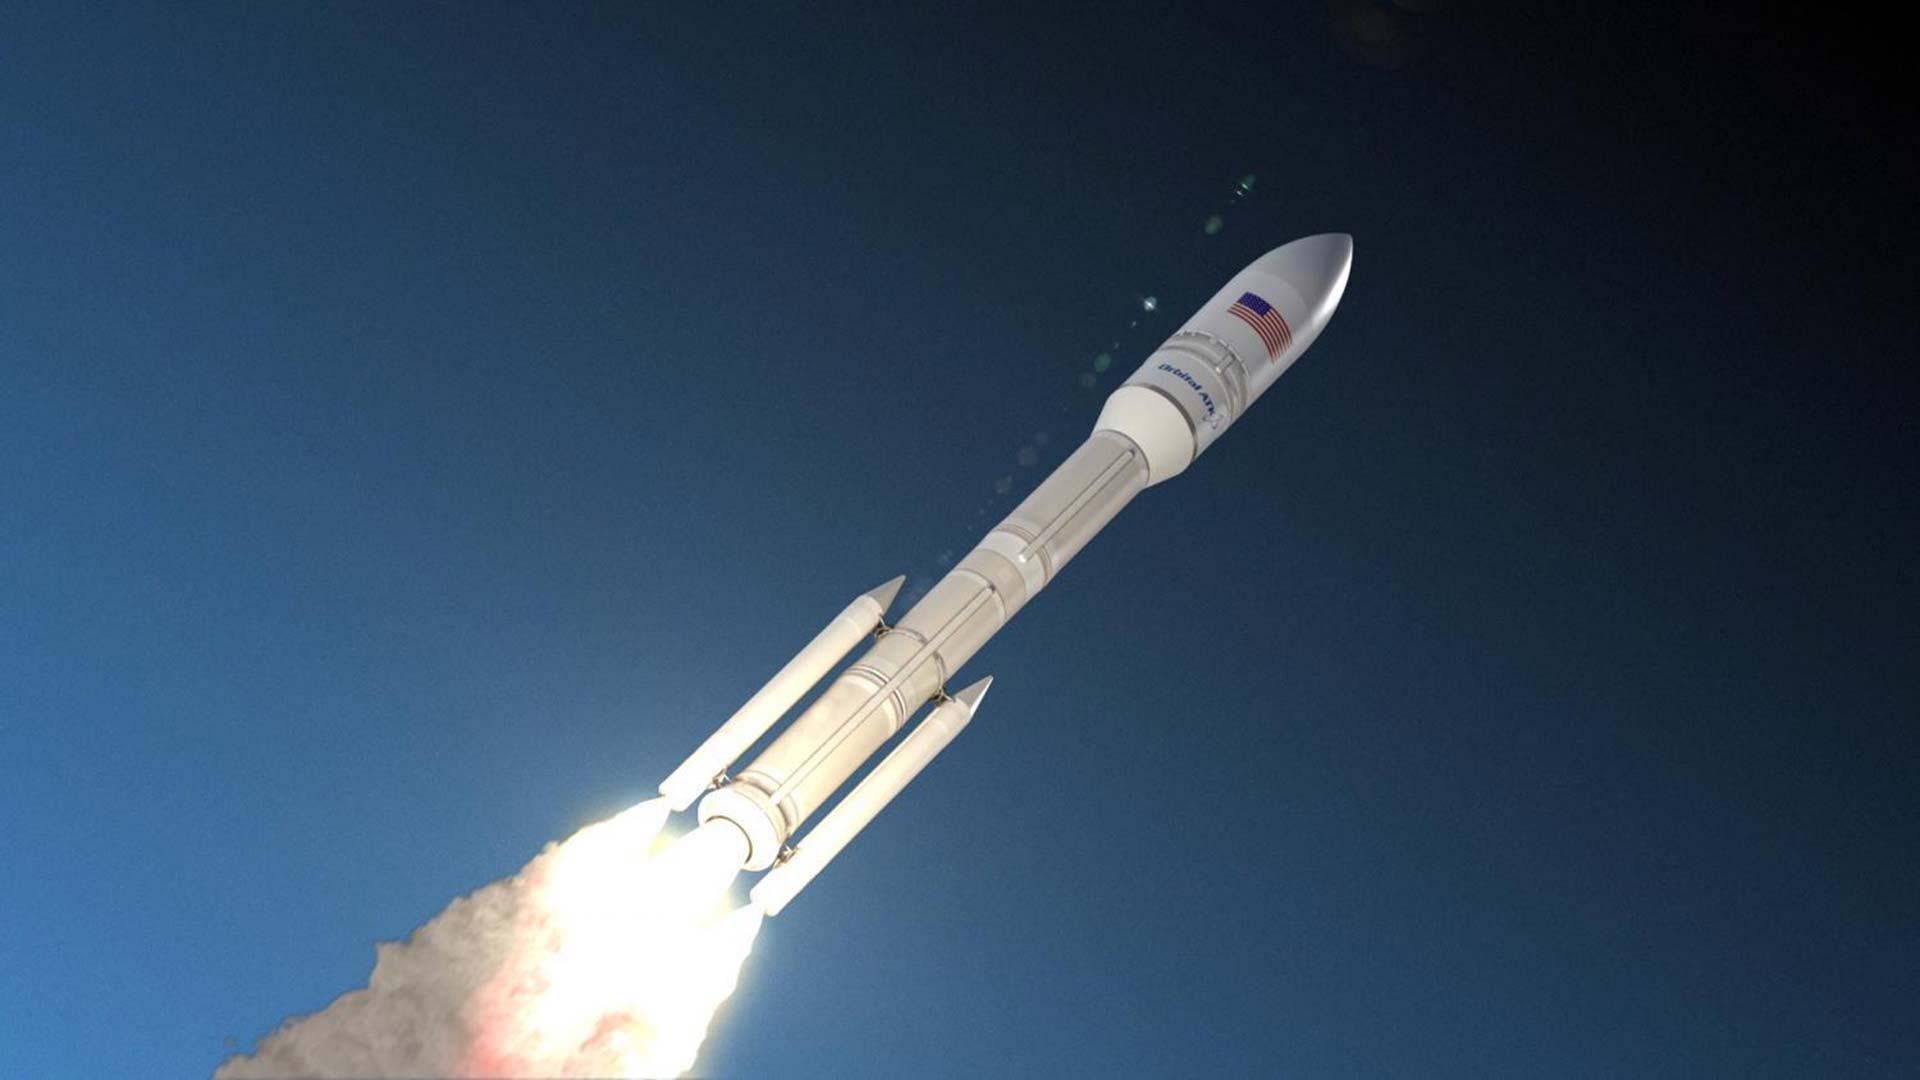 An artist's rendition of Orbital ATK's Next Generation Rocket in flight.